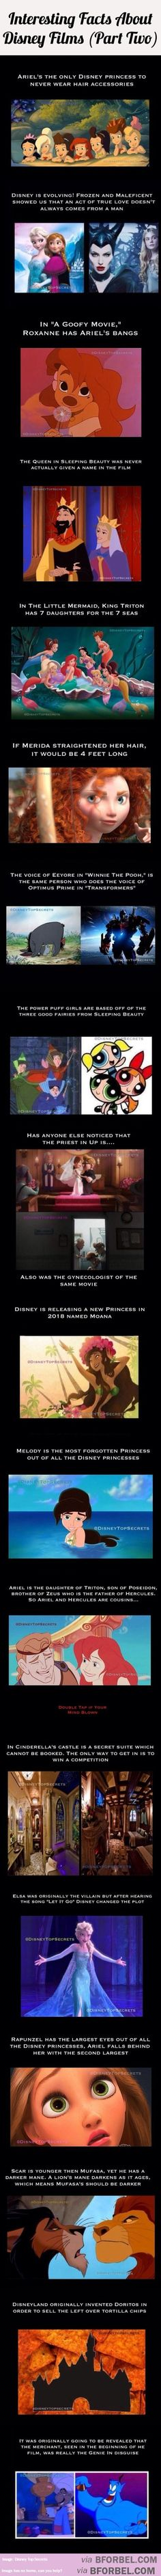 19 Interesting Facts About Disney Films… | B for Bel